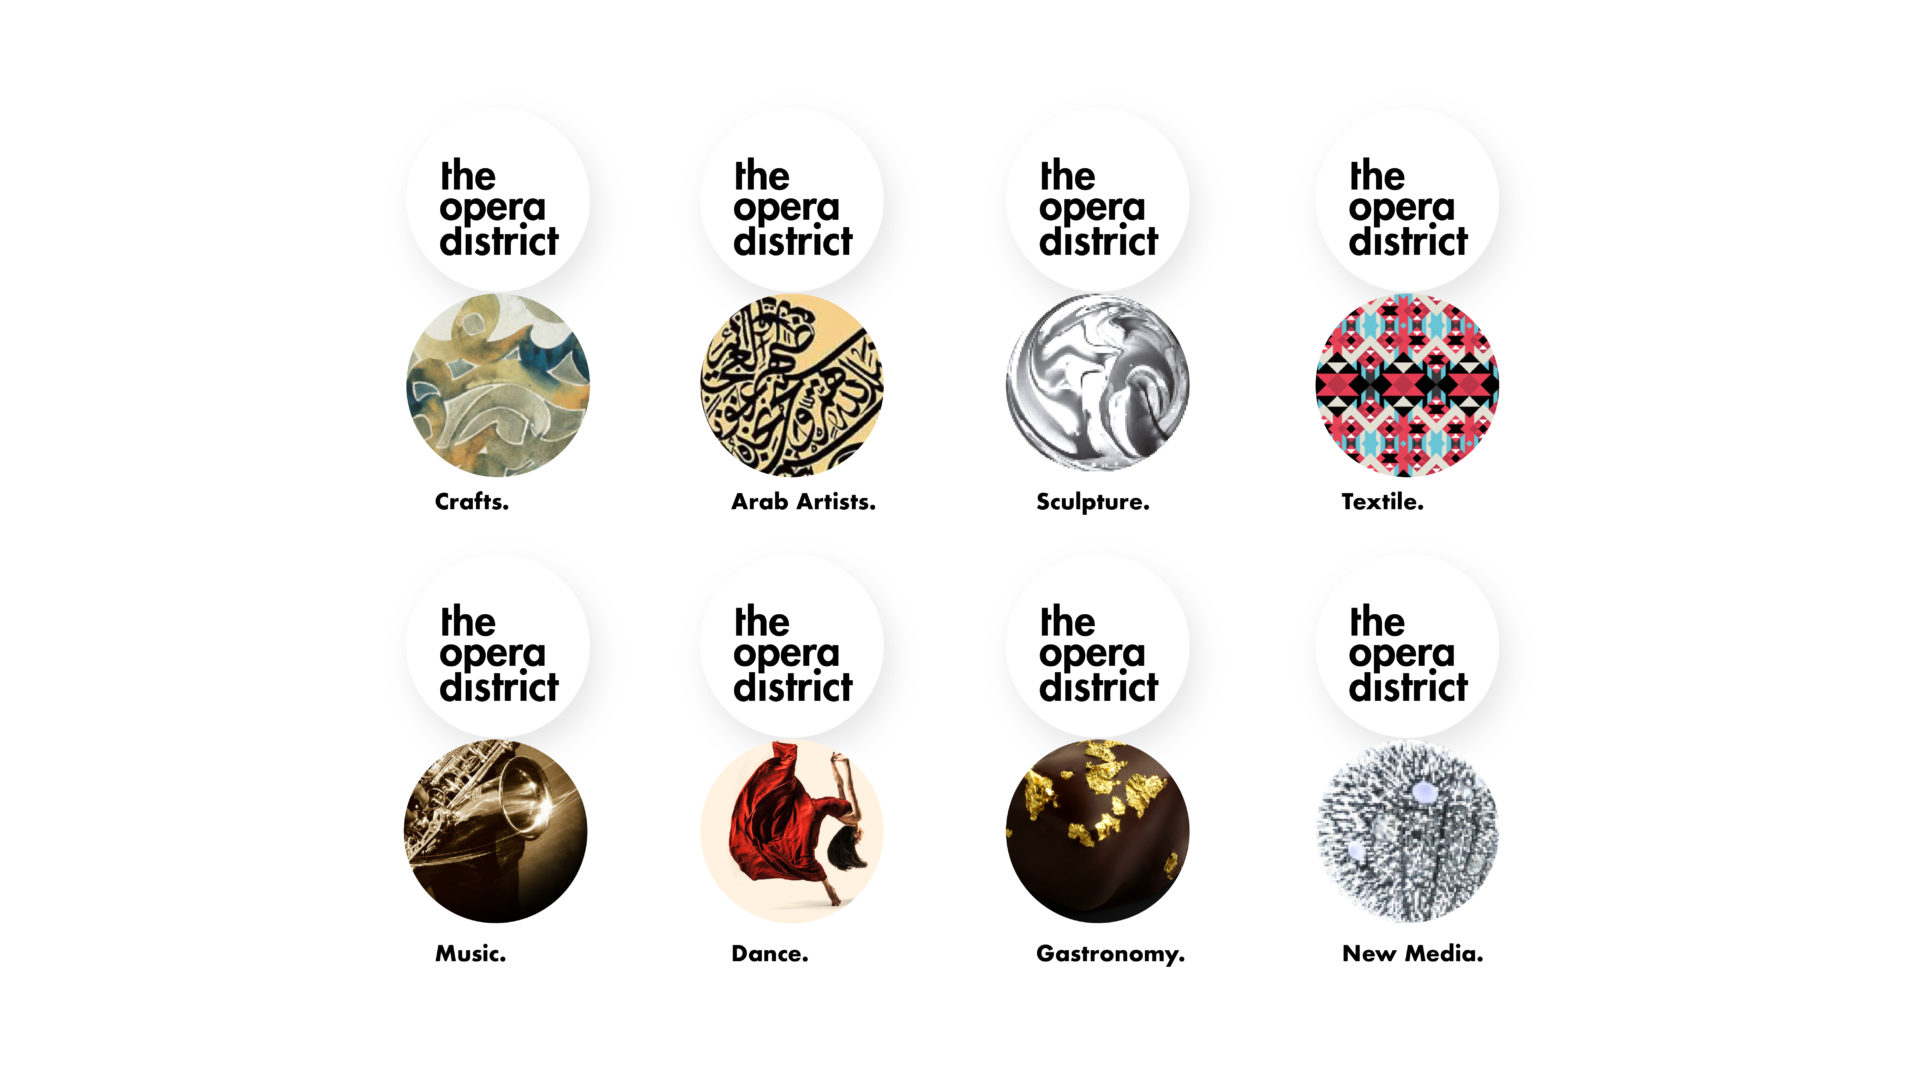 Different themes for the Opera District, all in a circular shape